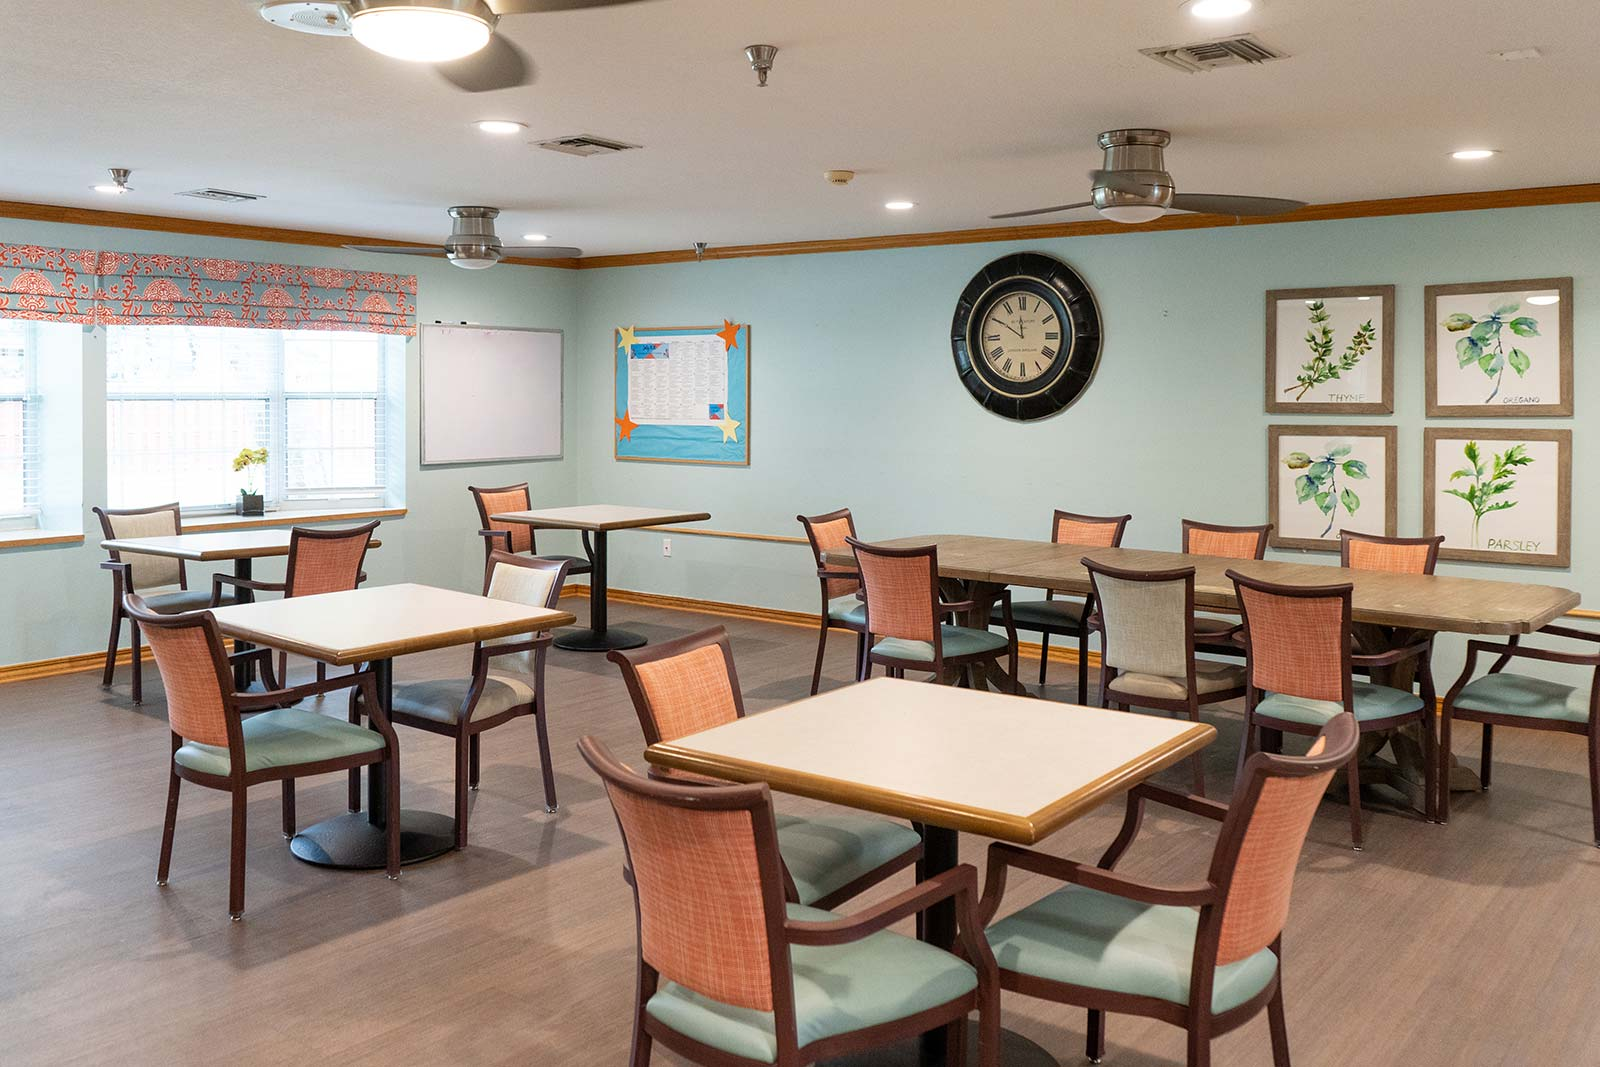 Memory care dining room at Heron House assisted living and memory care community in Sarasota, FL